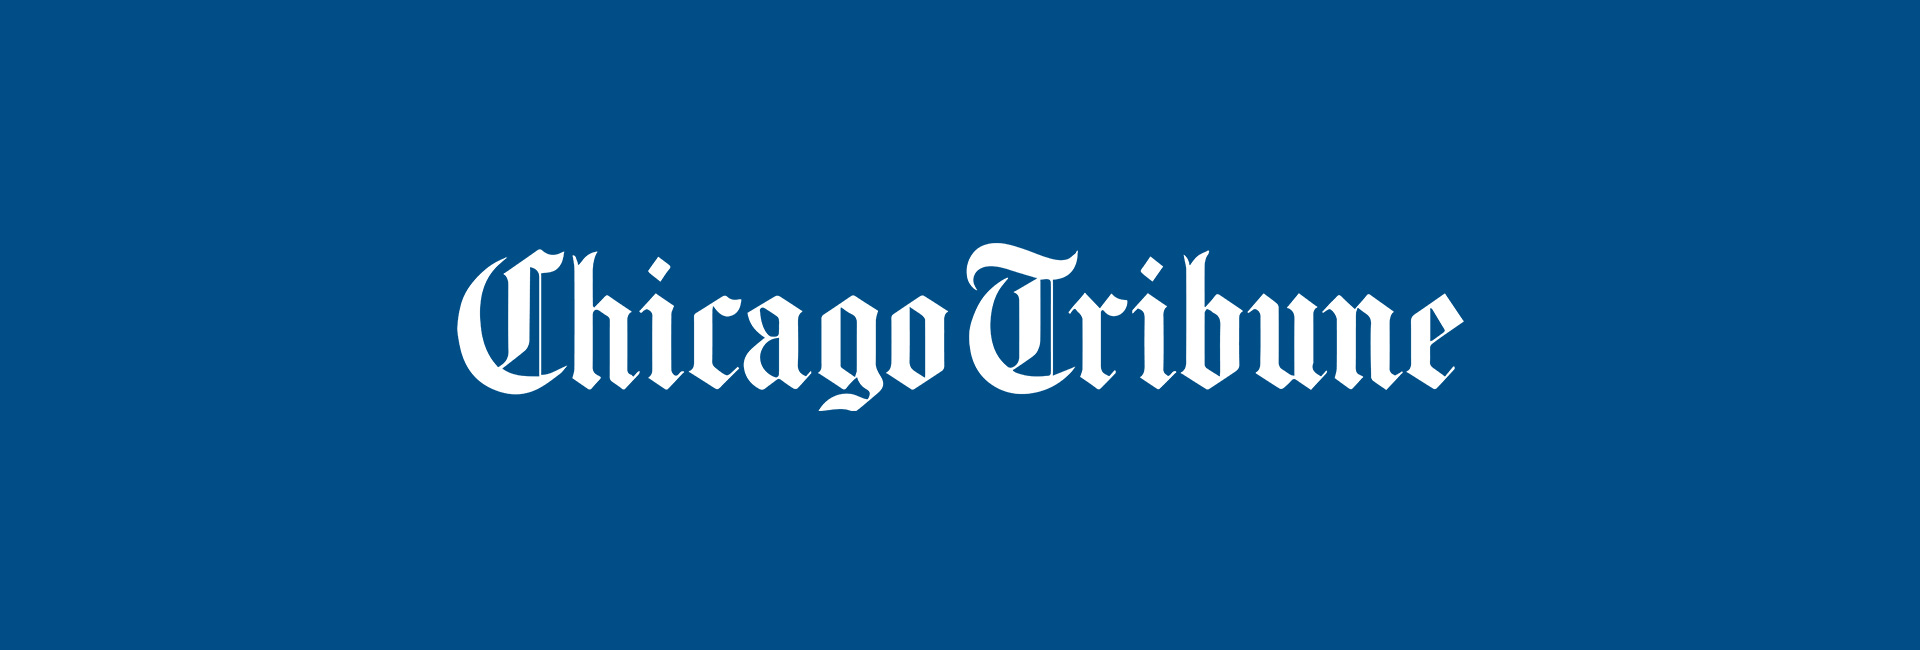 Chicago Tribune Interview: Side Six Helps Your Digital Deliver